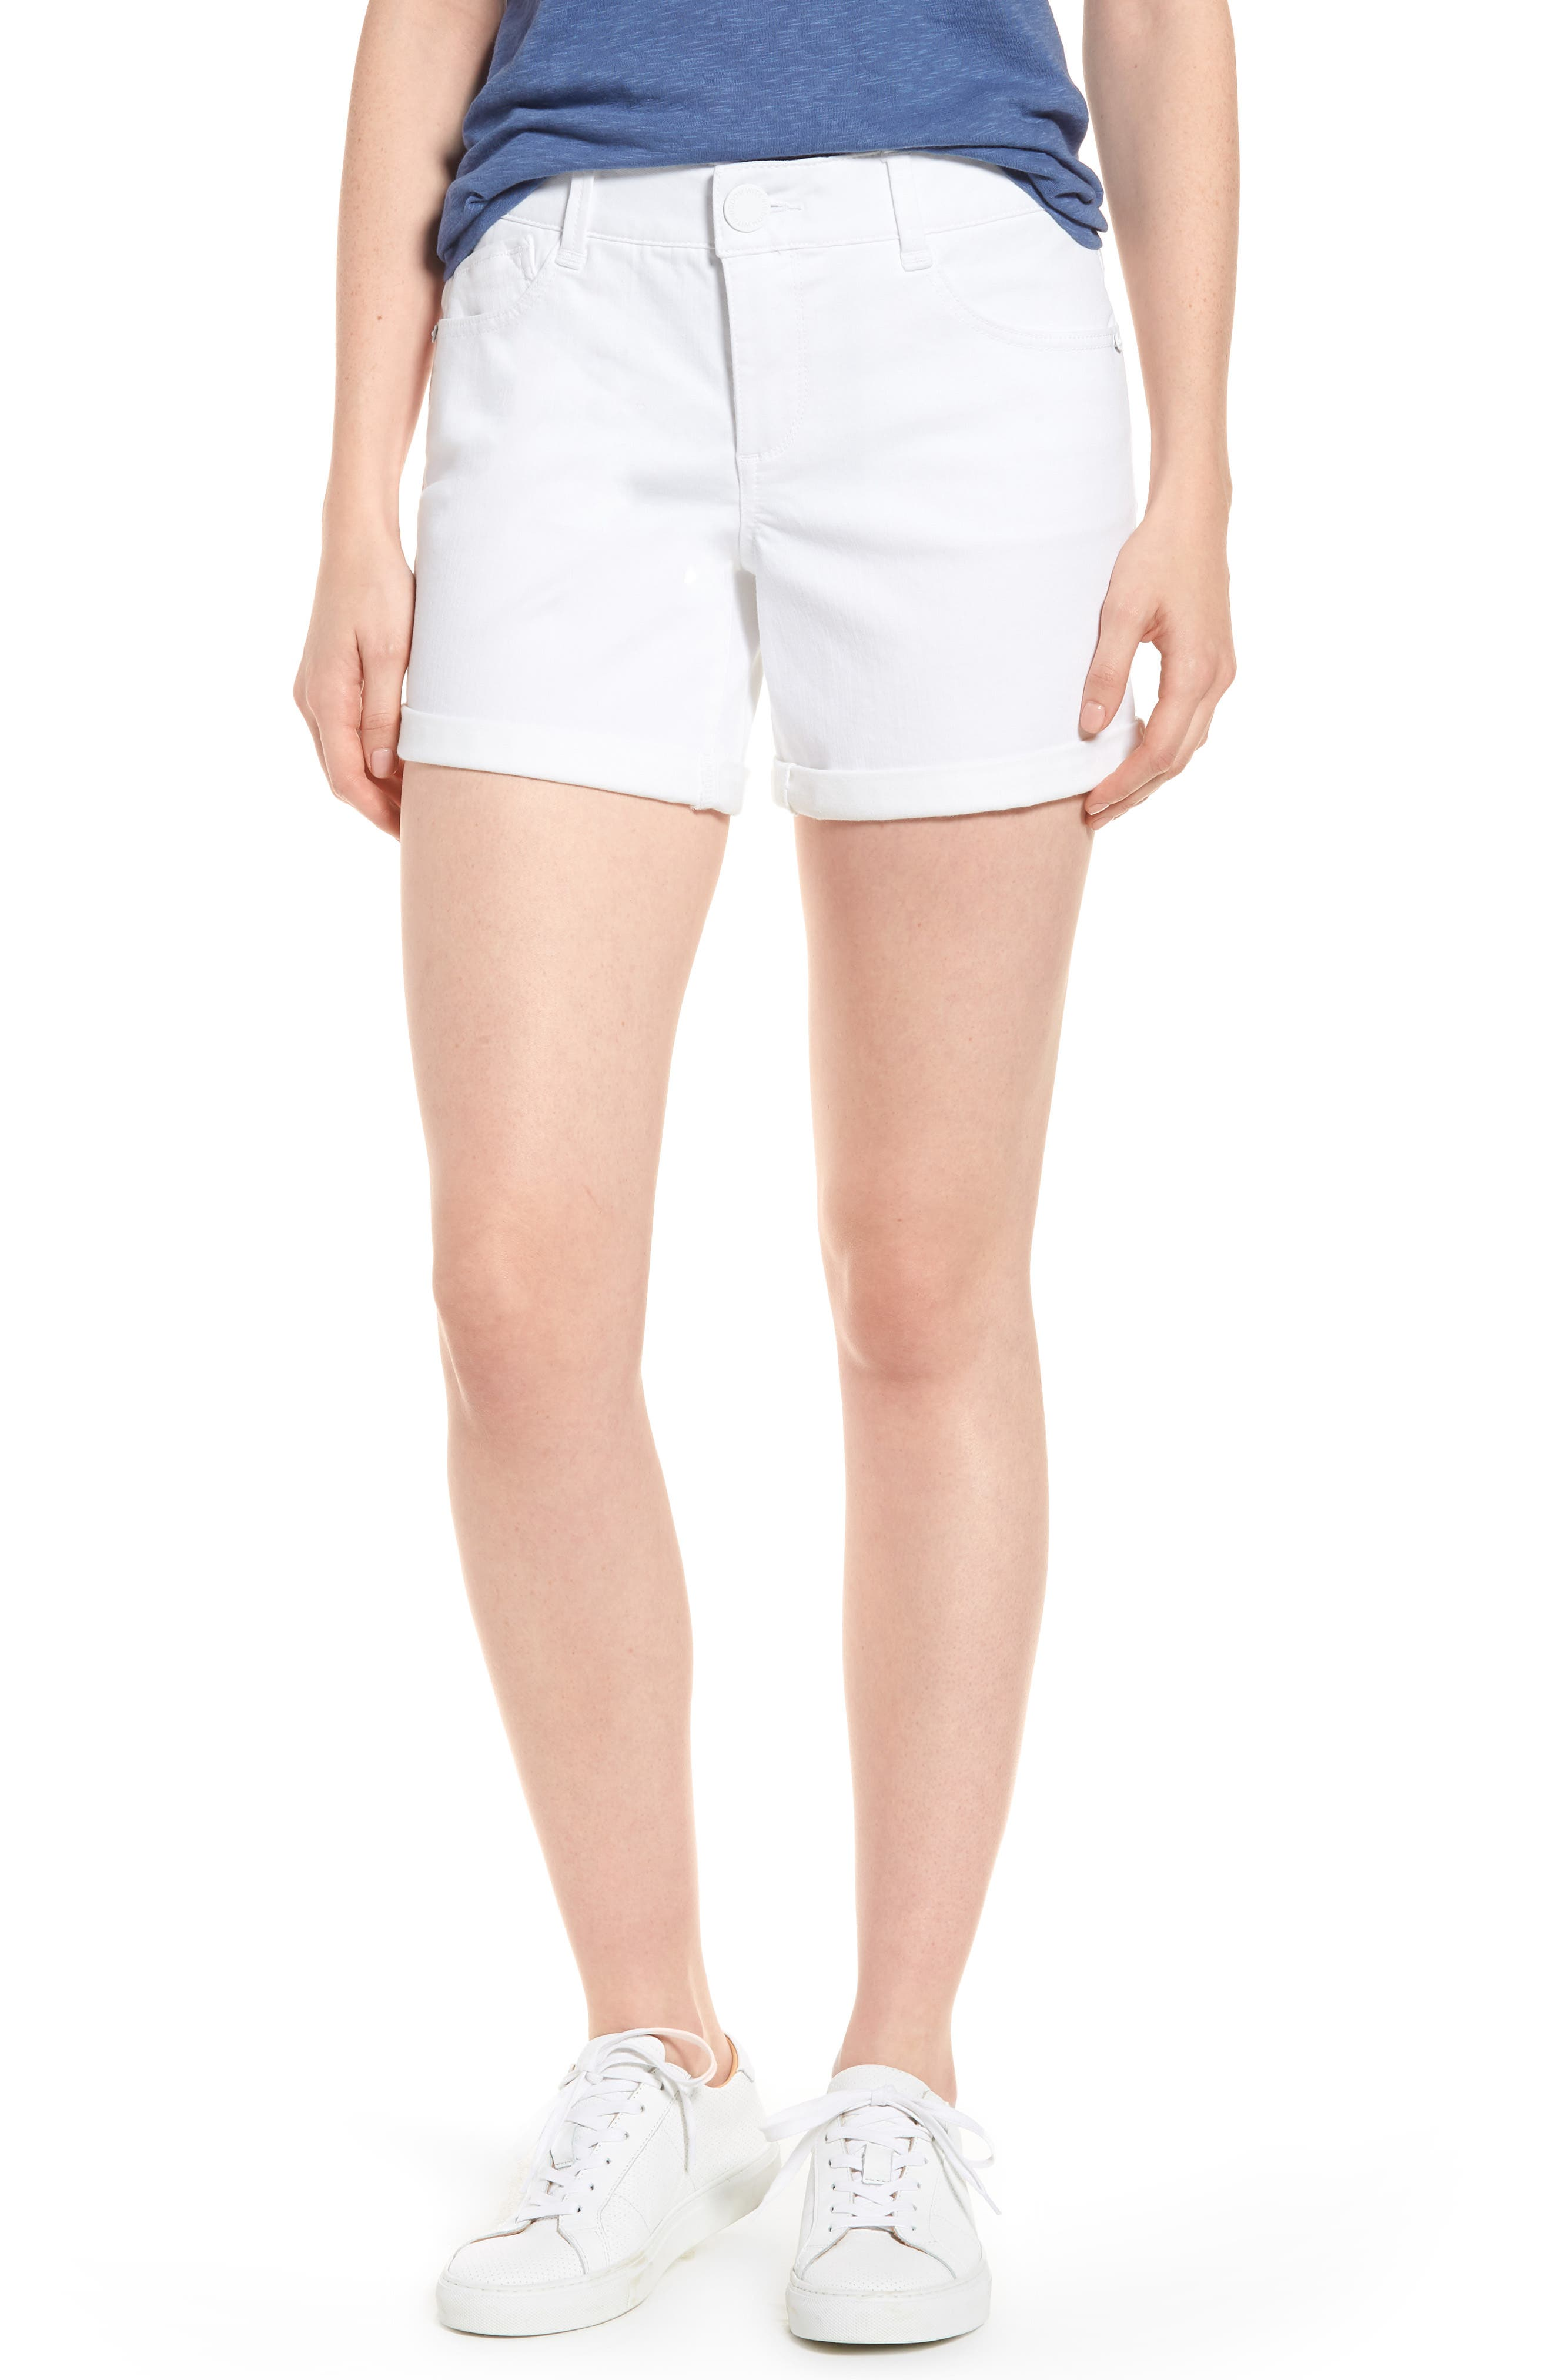 Ab-solution Cuffed White Shorts,                         Main,                         color, 106